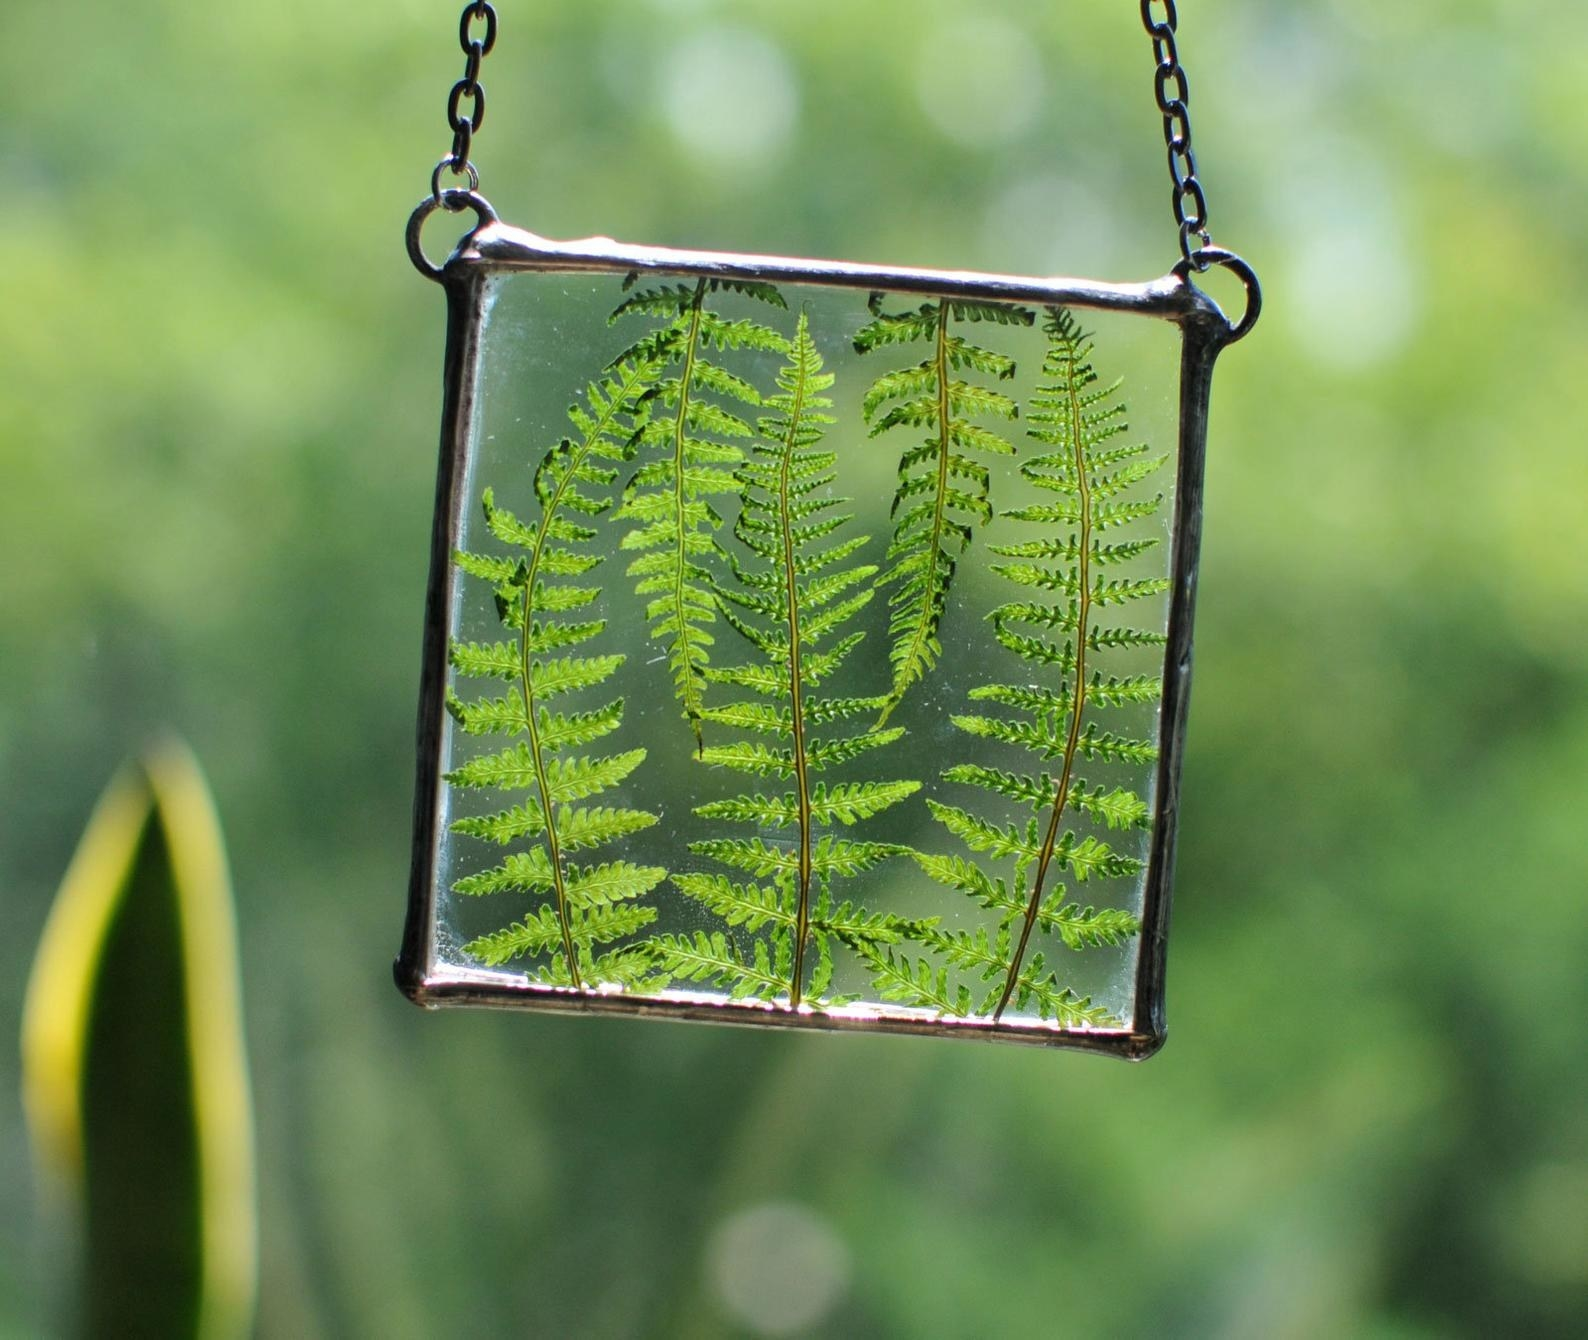 The hanging terrarium looks like a square piece of glass with a metal frame around it. There are three green fern leaves inside of it.